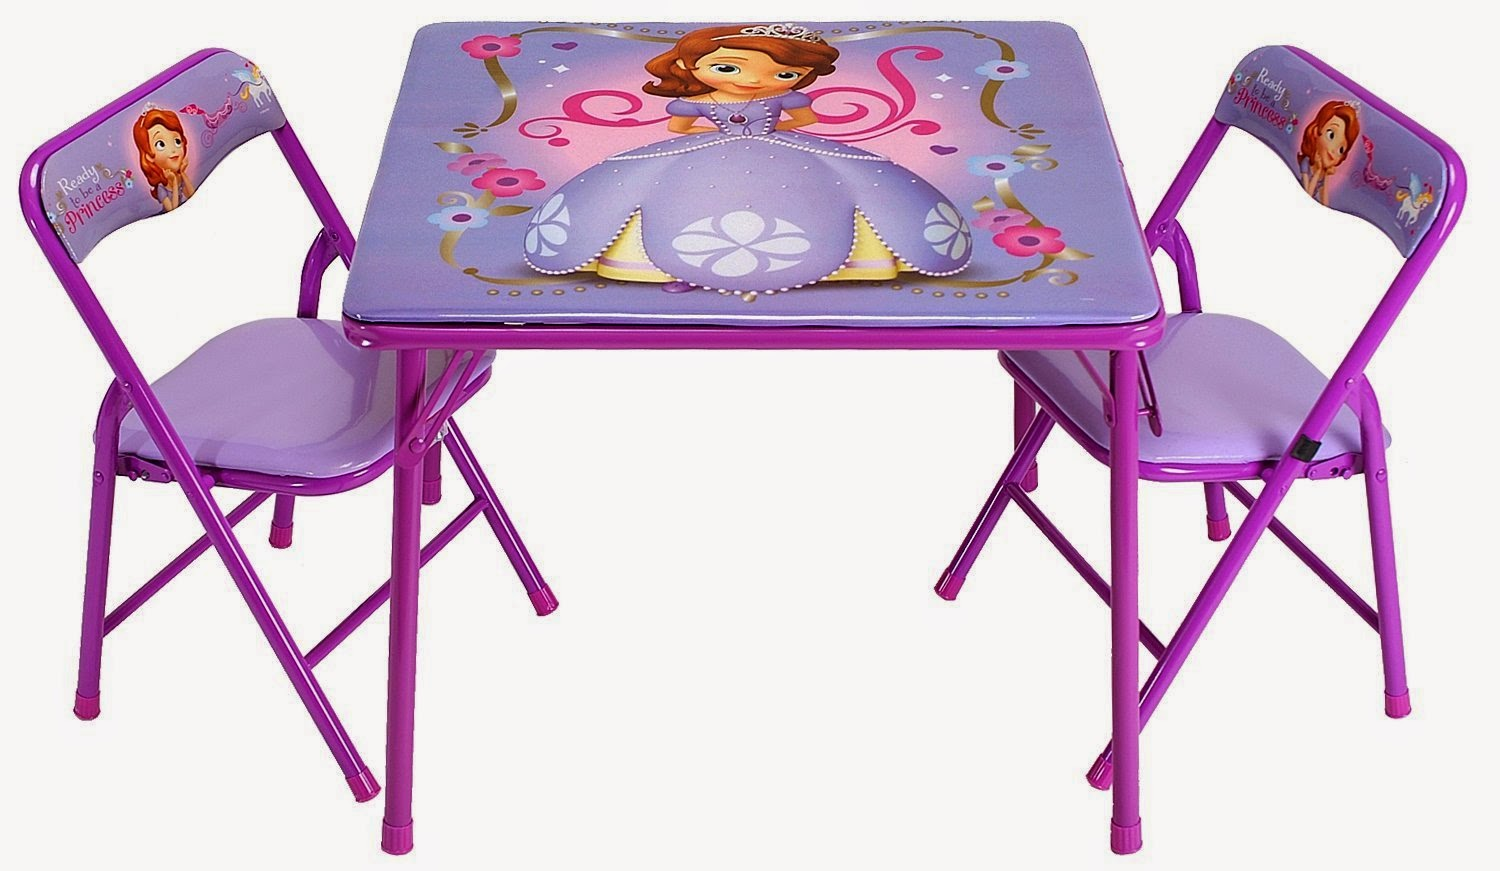 Sofia The First Bedroom Bedroom Decor Ideas And Designs How To Decorate A Disneys Sofia